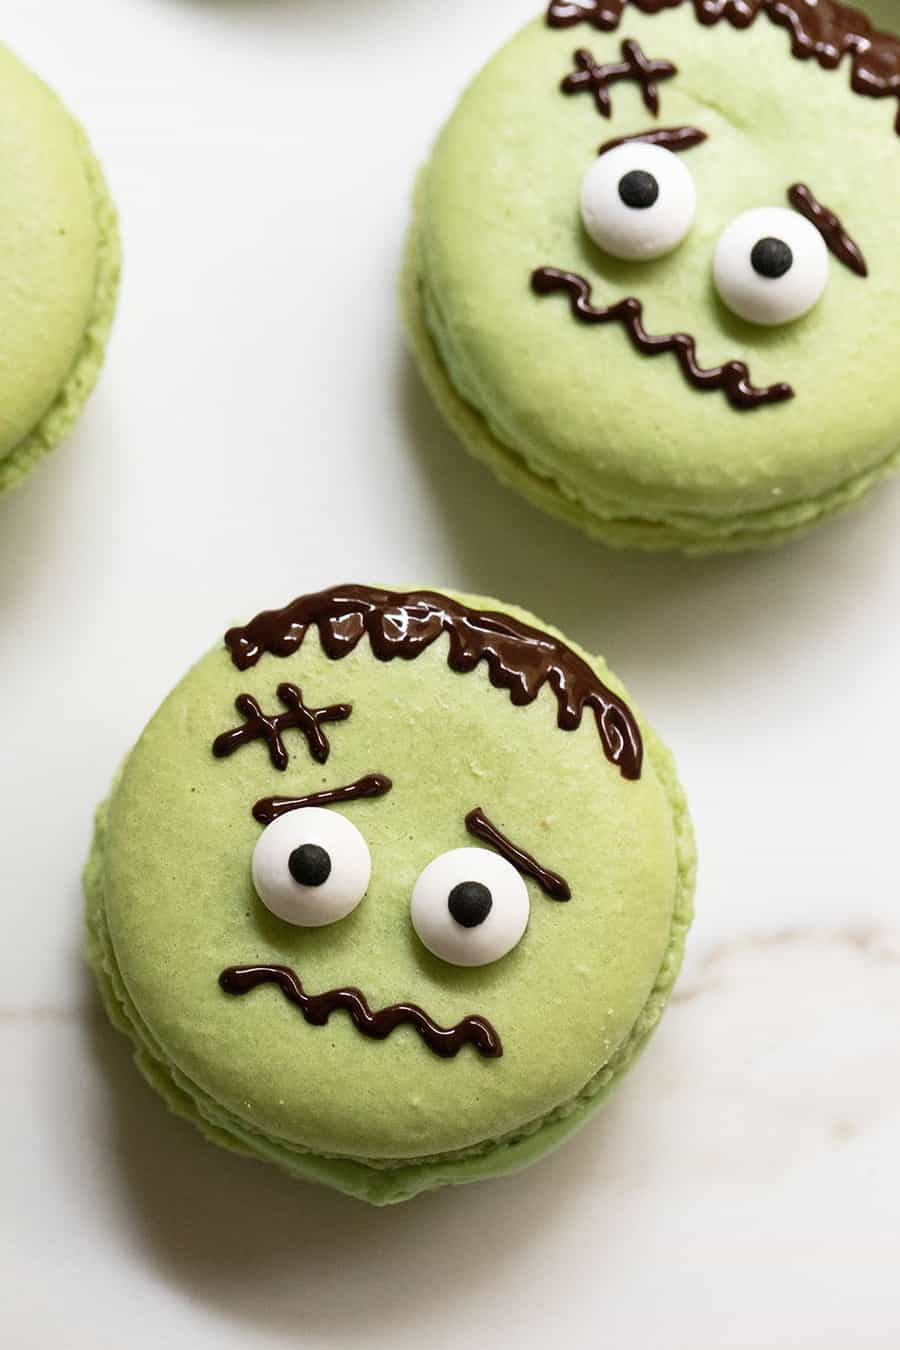 Green Frankenstein Macarons with eyes and chocolate face design.